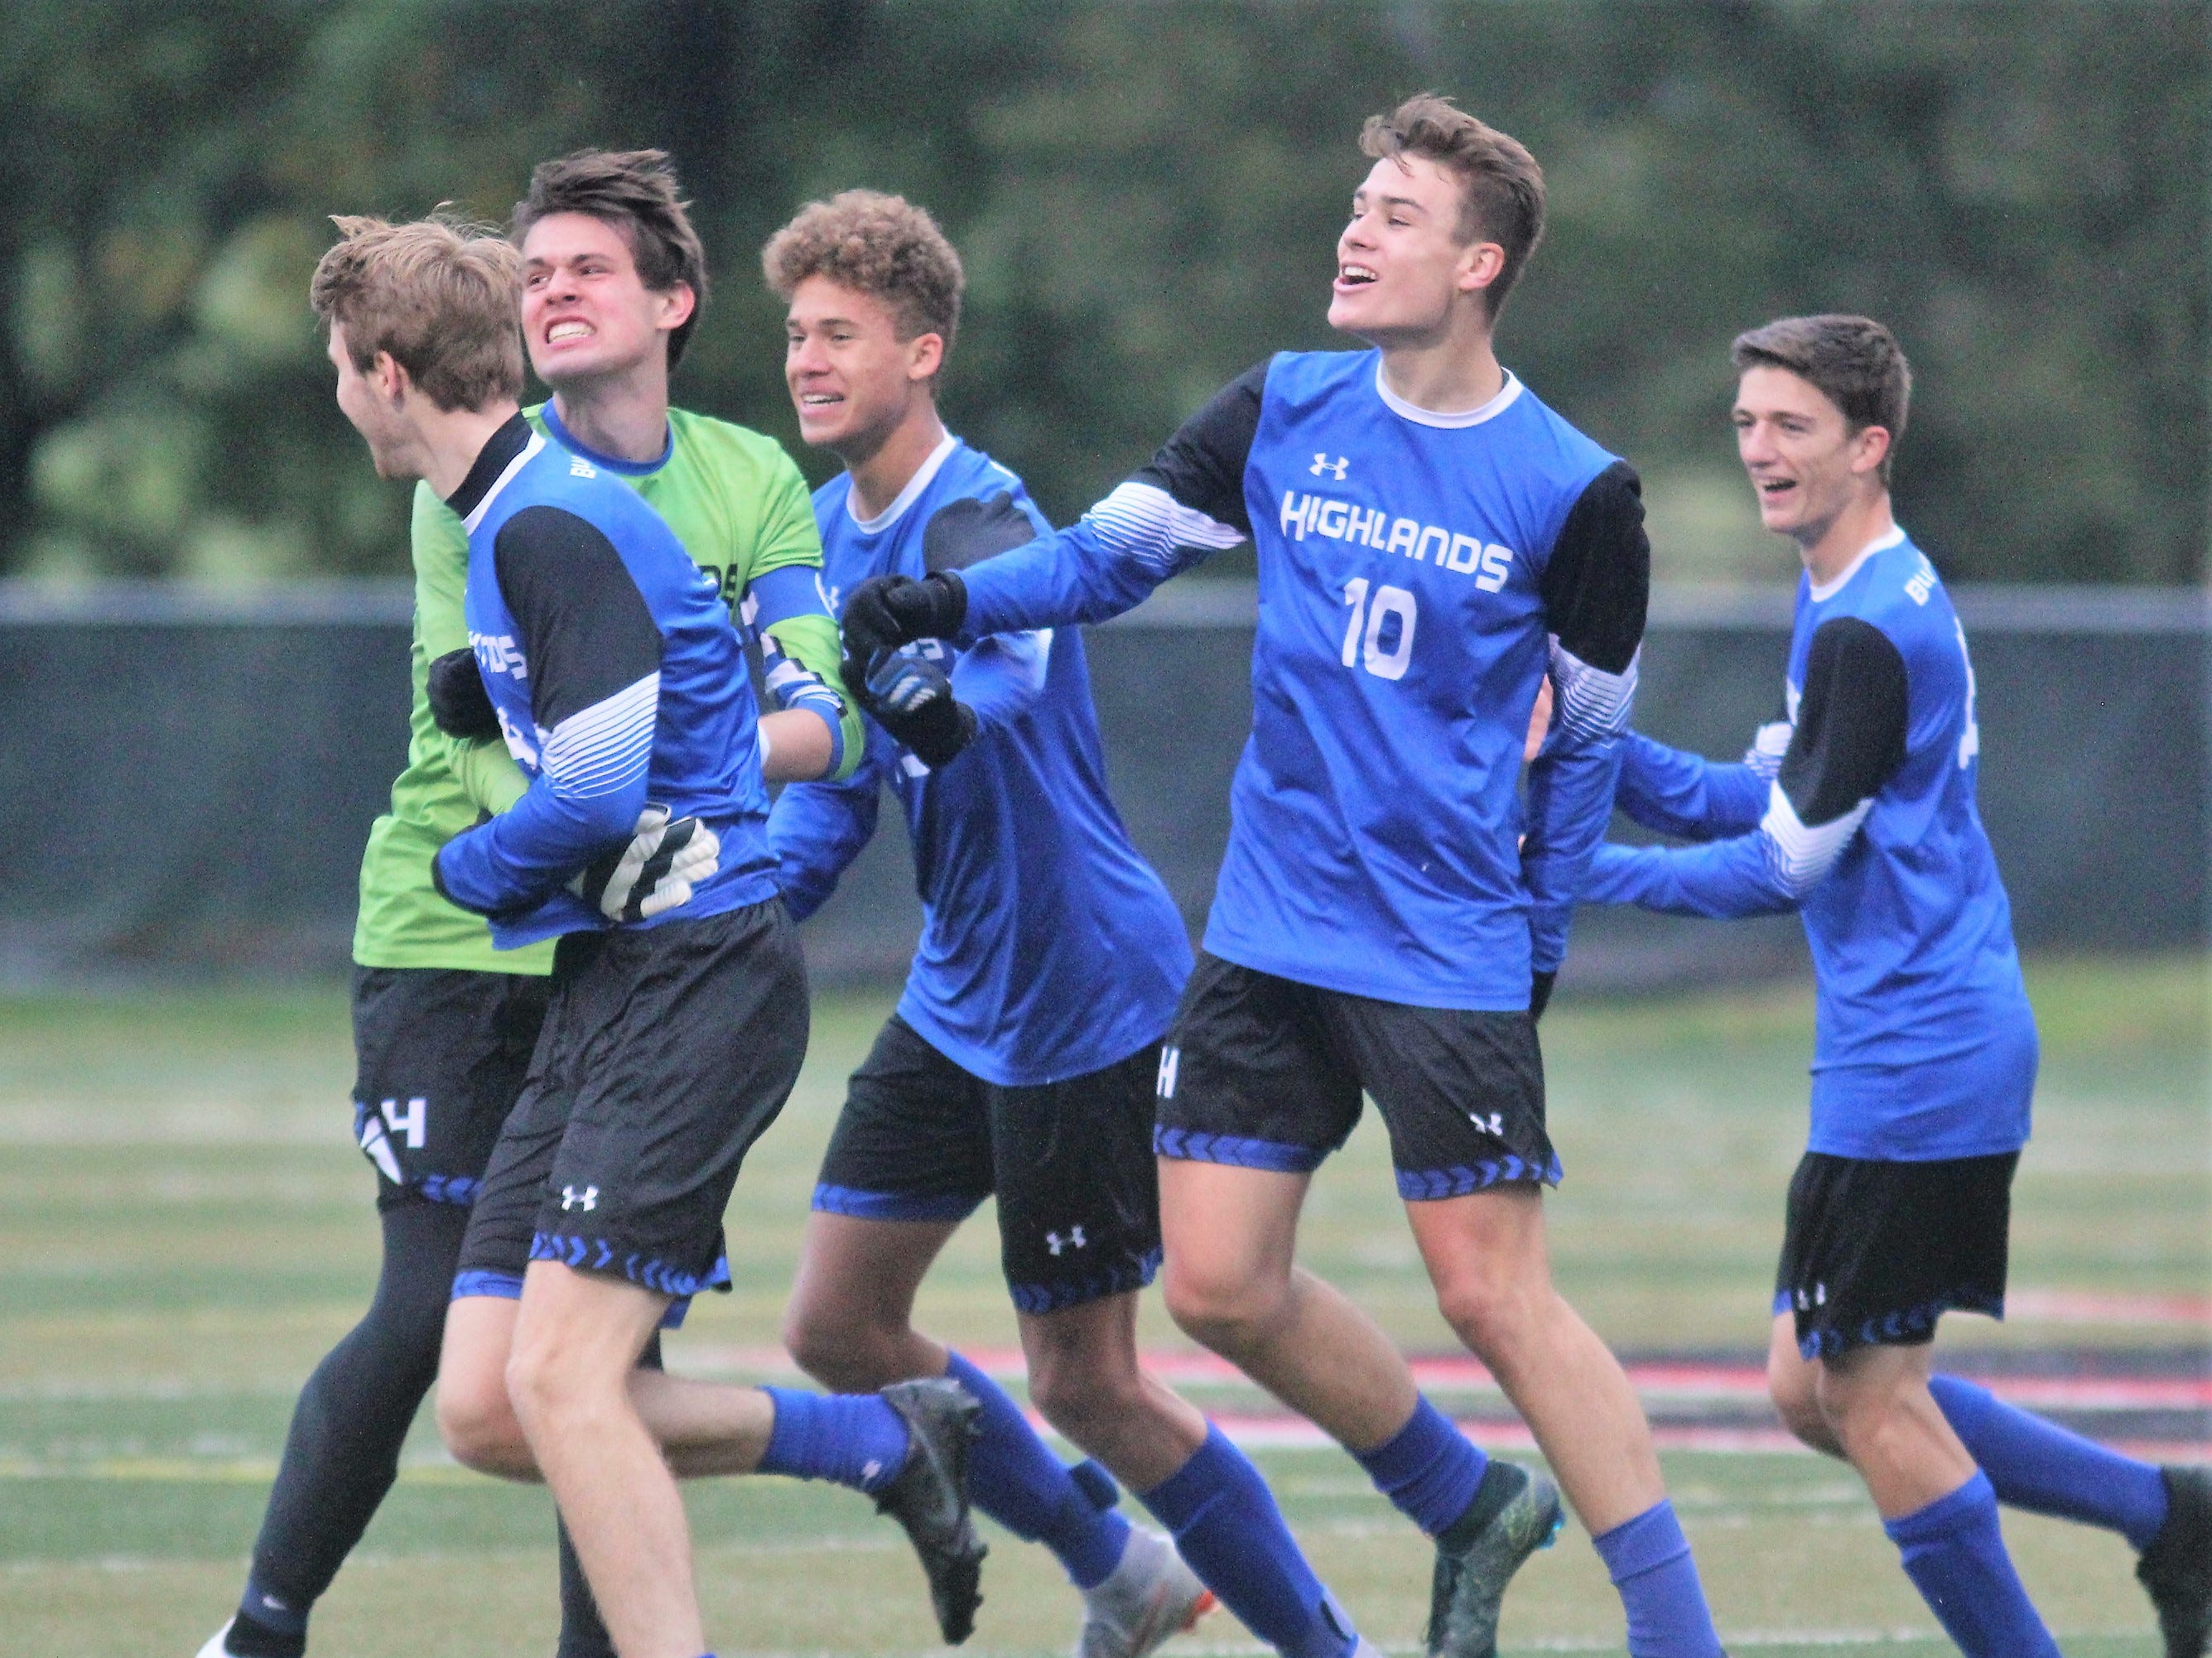 Highlands players celebrate their first goal of the game by Luke Schweitzer, far left, during Highlands' 3-0 win over Daviess County in a KHSAA boys soccer state quarterfinal Oct. 27, 2018 at Paul Laurence Dunbar HS, Lexington KY.